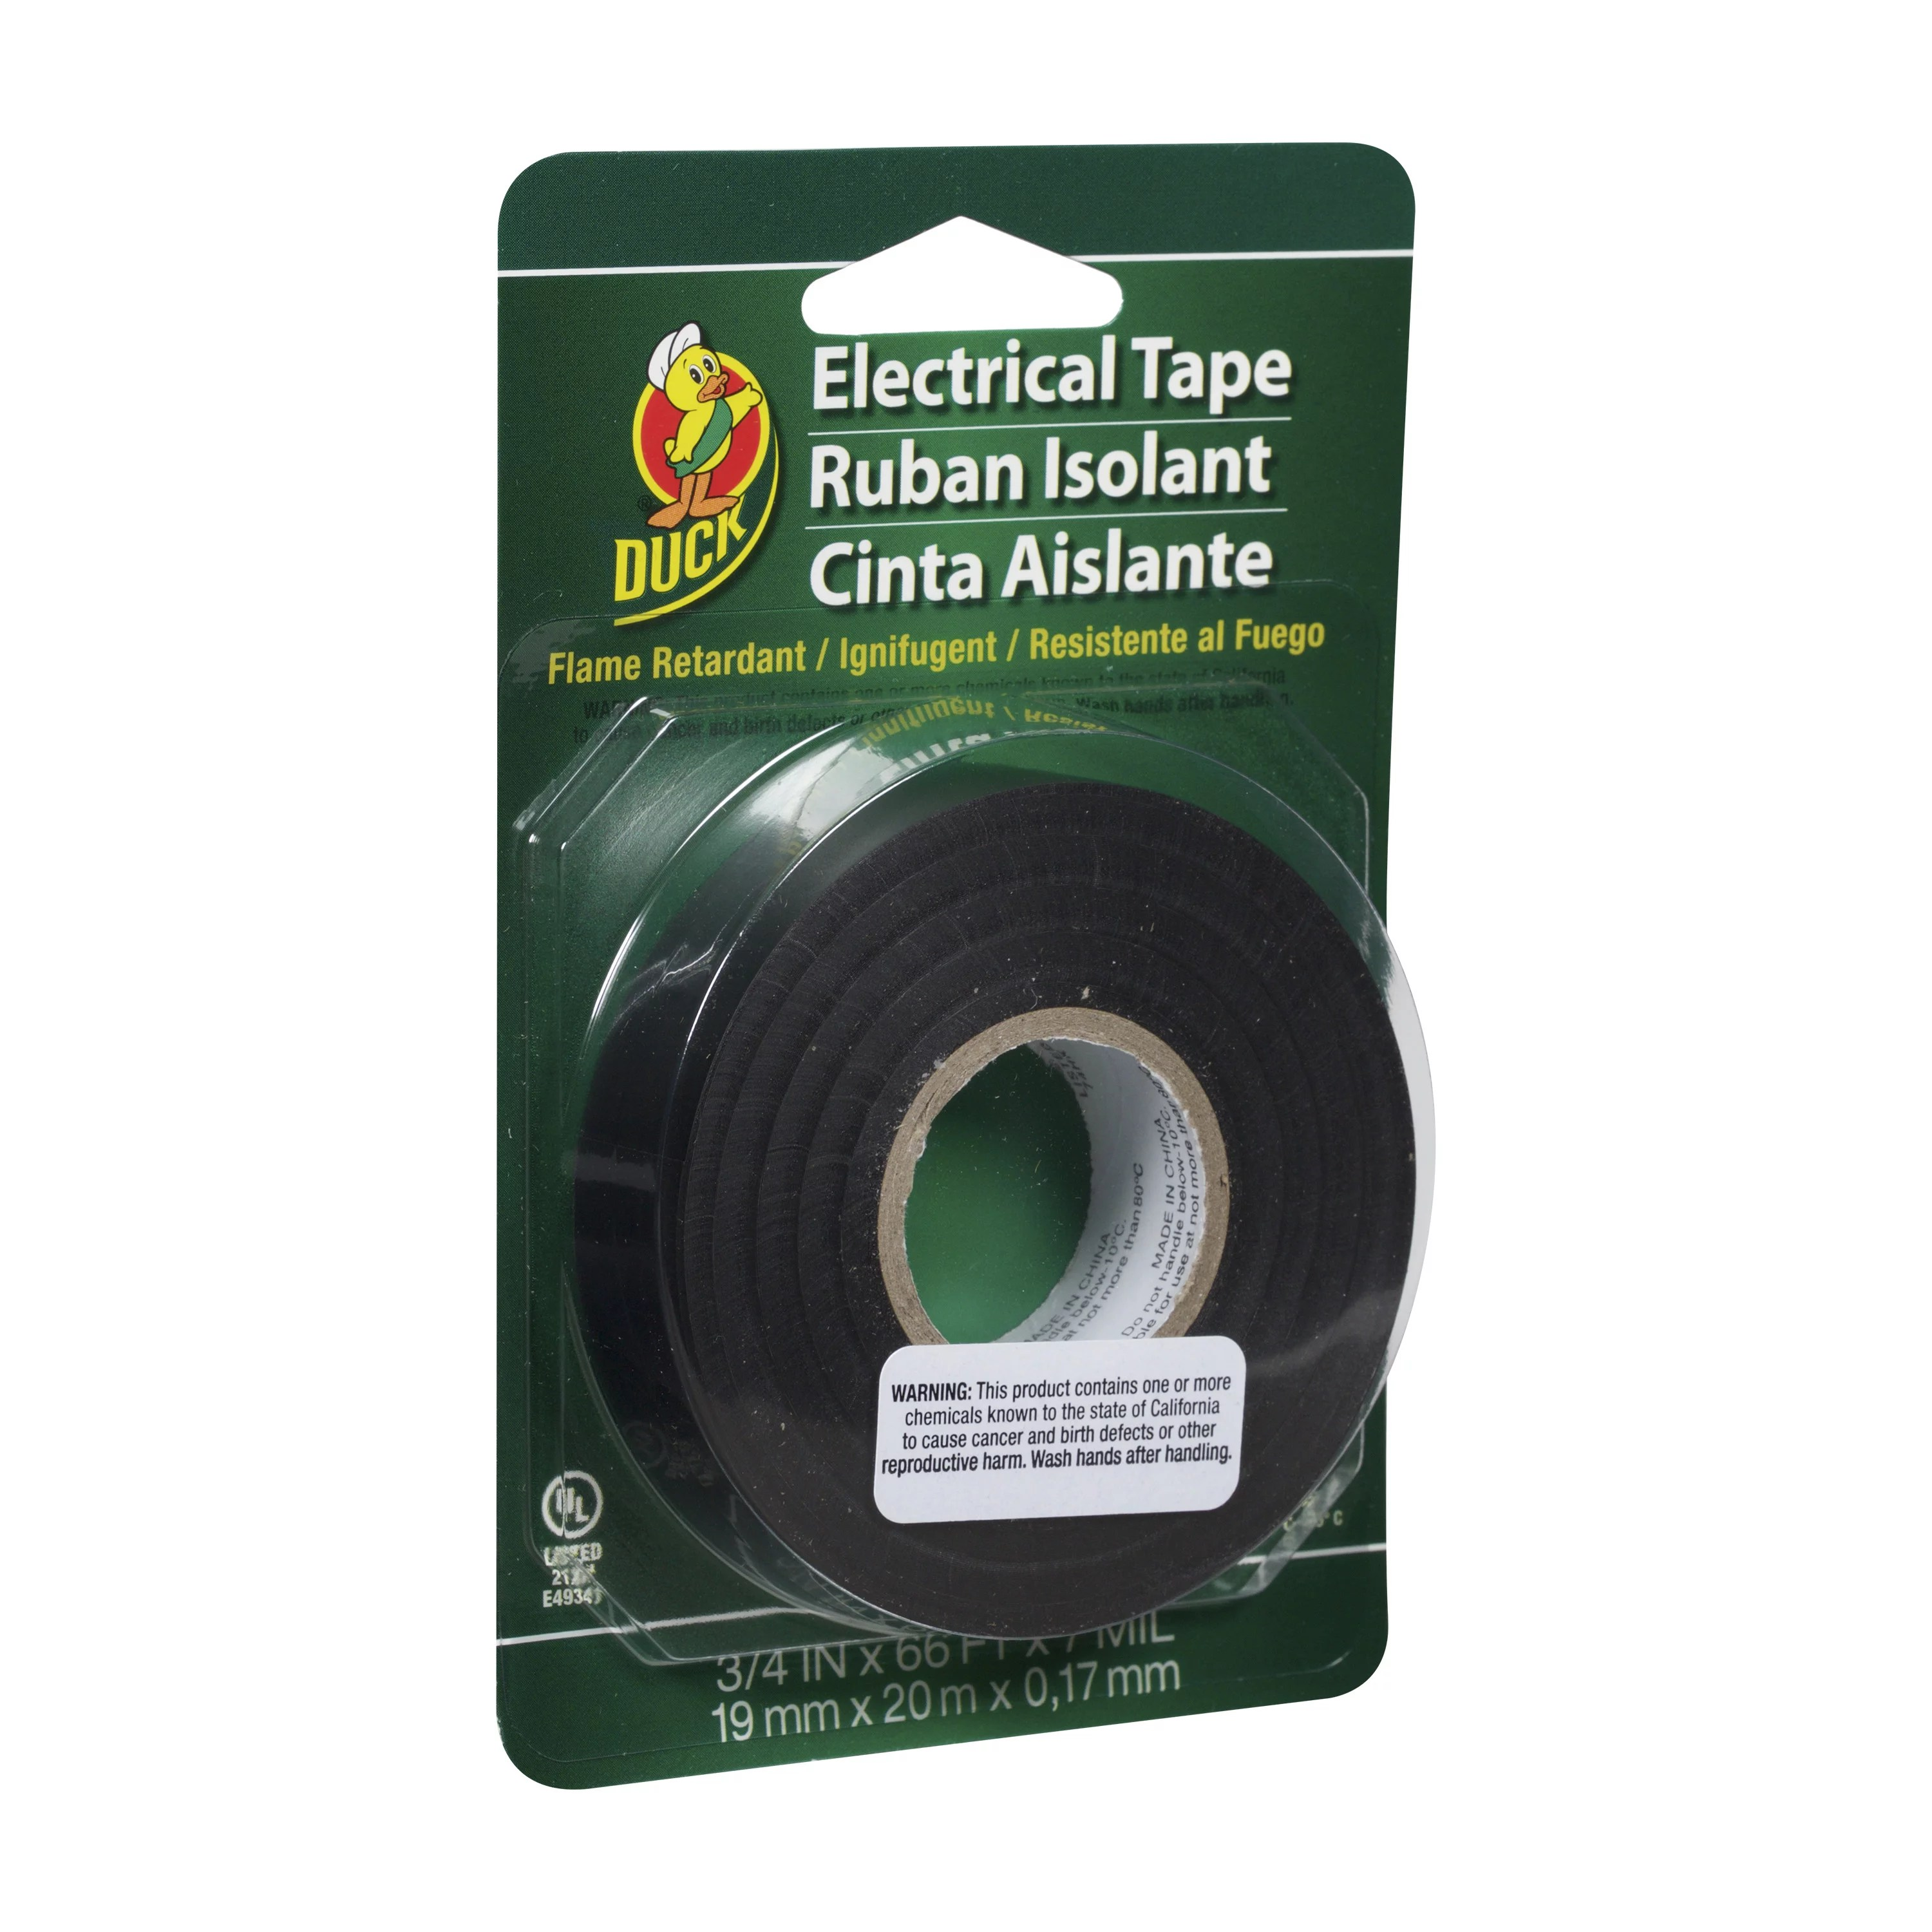 duck professional rubber electrical tape 0 75 in x 66 ft black walmart com